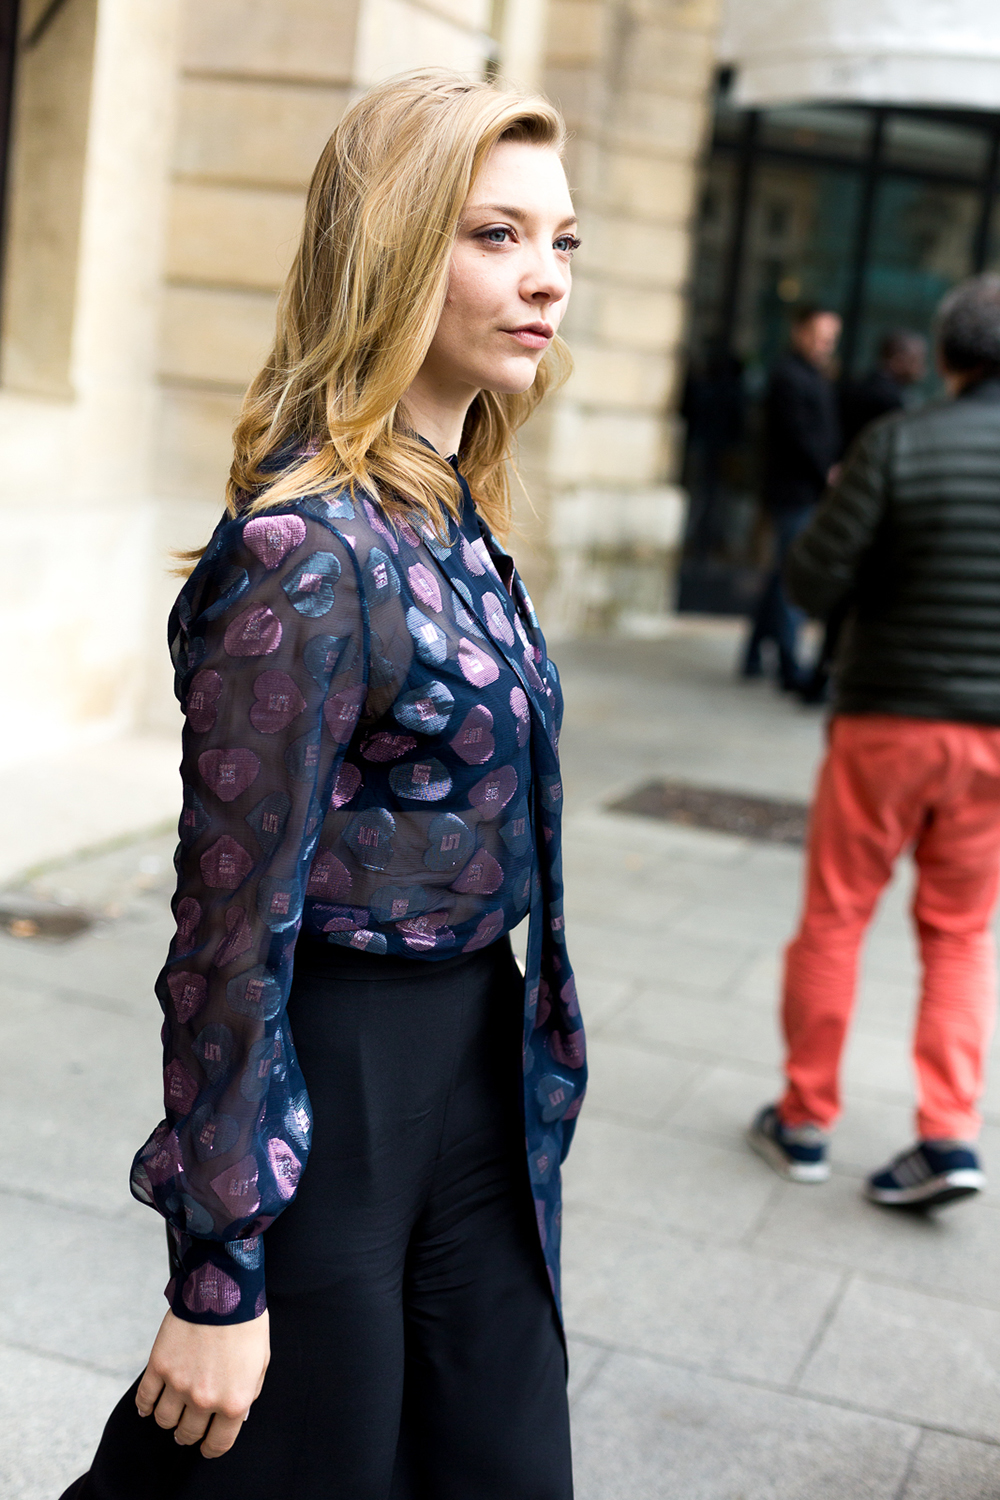 Natalie Dormer casual hairstyle in Paris streets